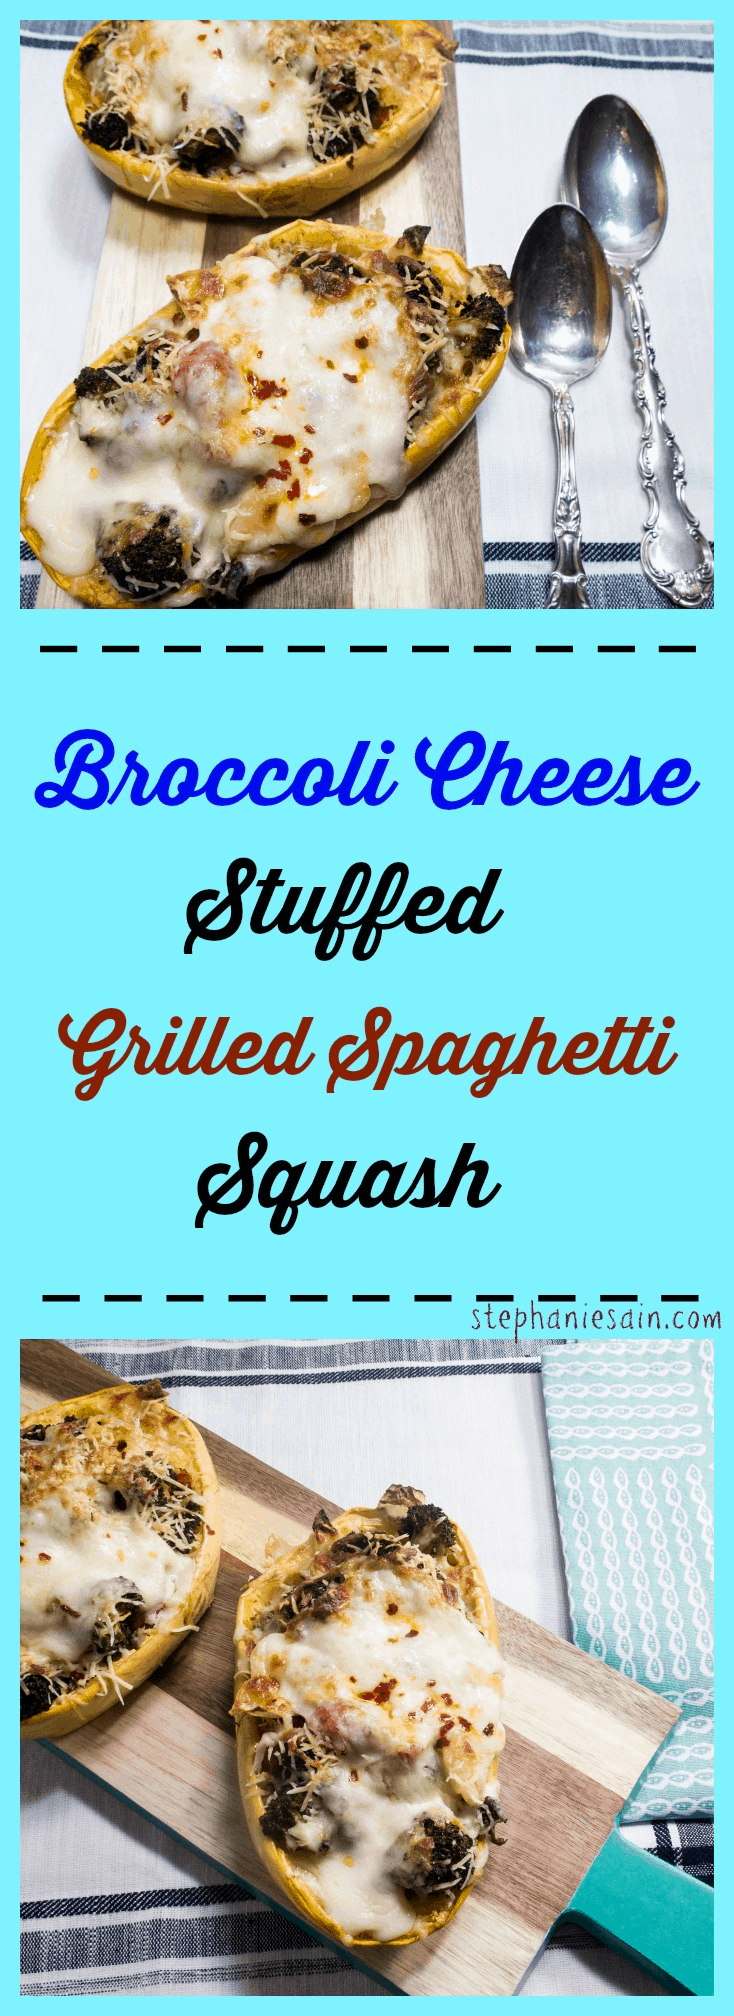 Broccoli Cheese Stuffed Grilled Spaghetti Squash is vegetarian, gluten free and prepared on the grill.